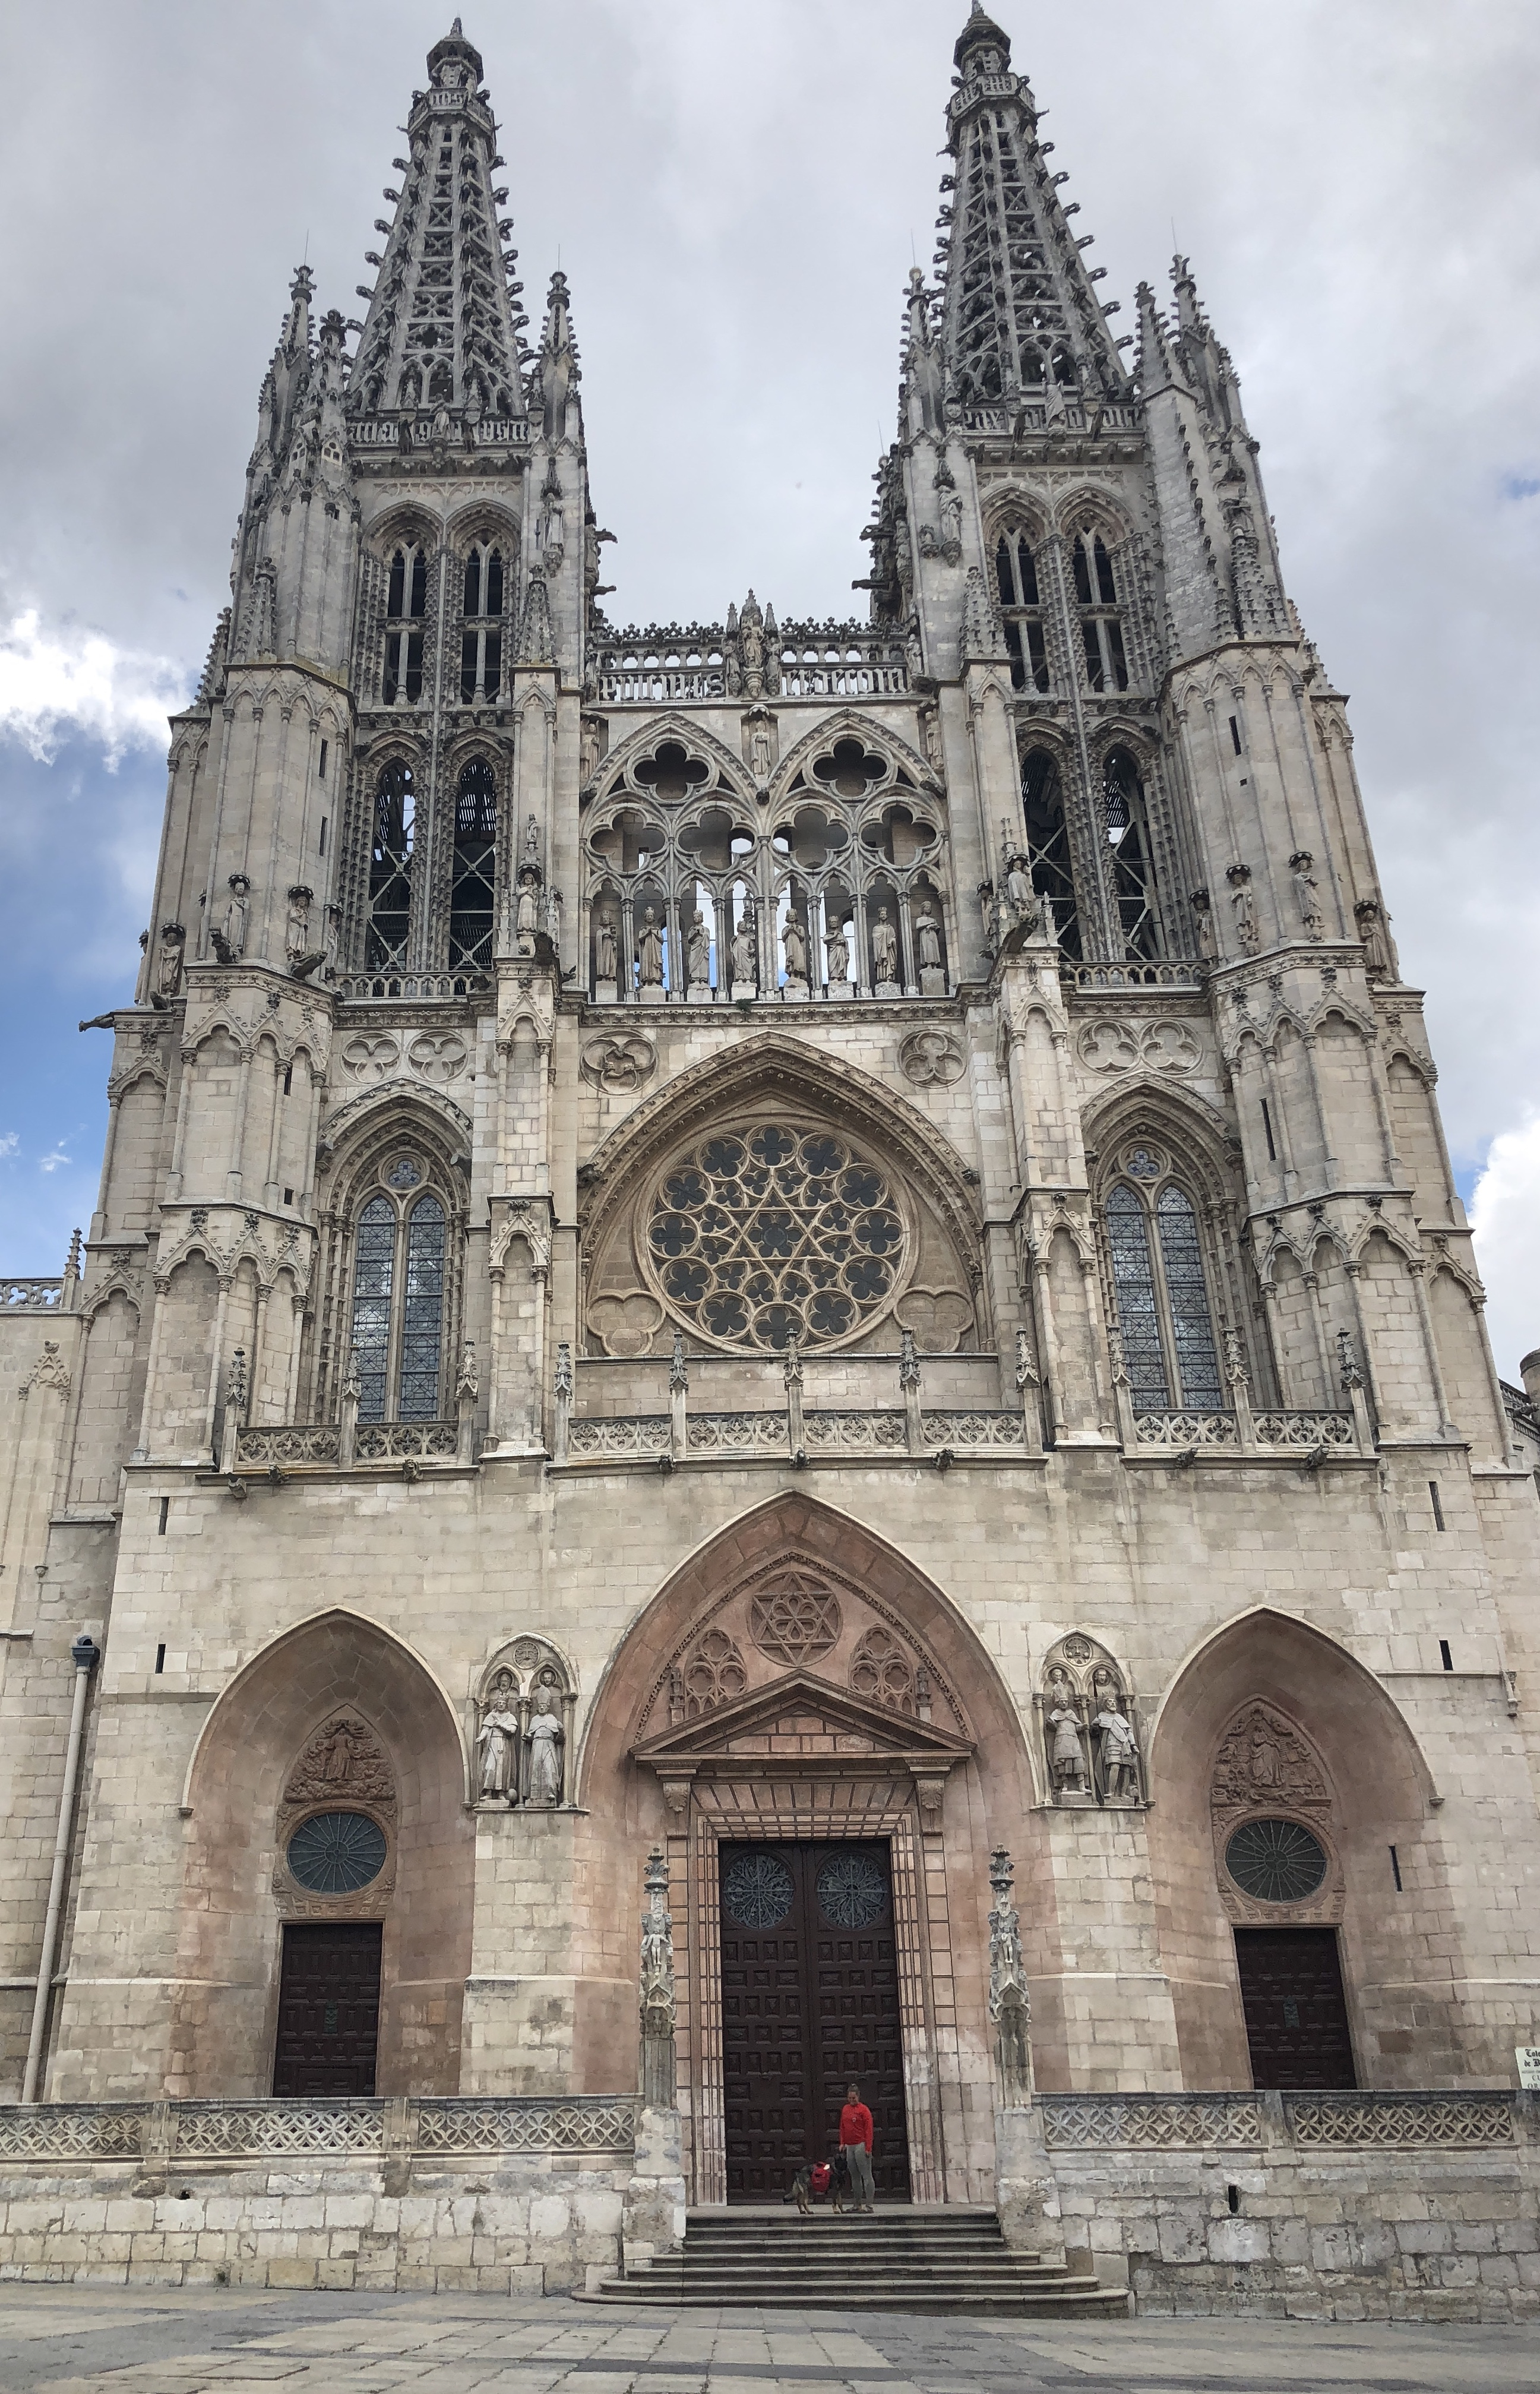 Day 15 – Agés to Burgos